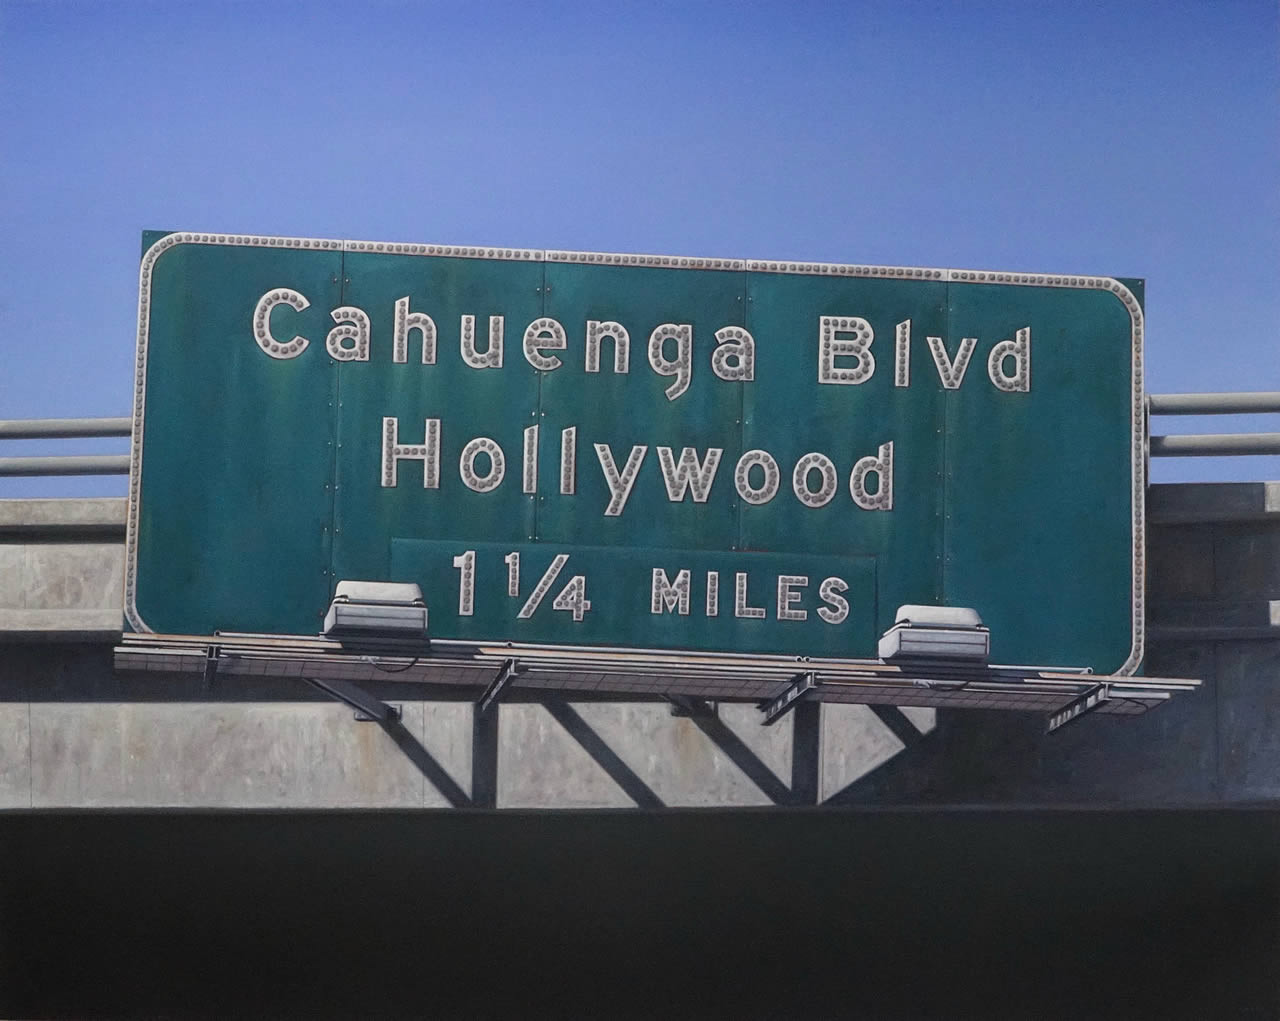 Cahuenga Blvd Hollywood